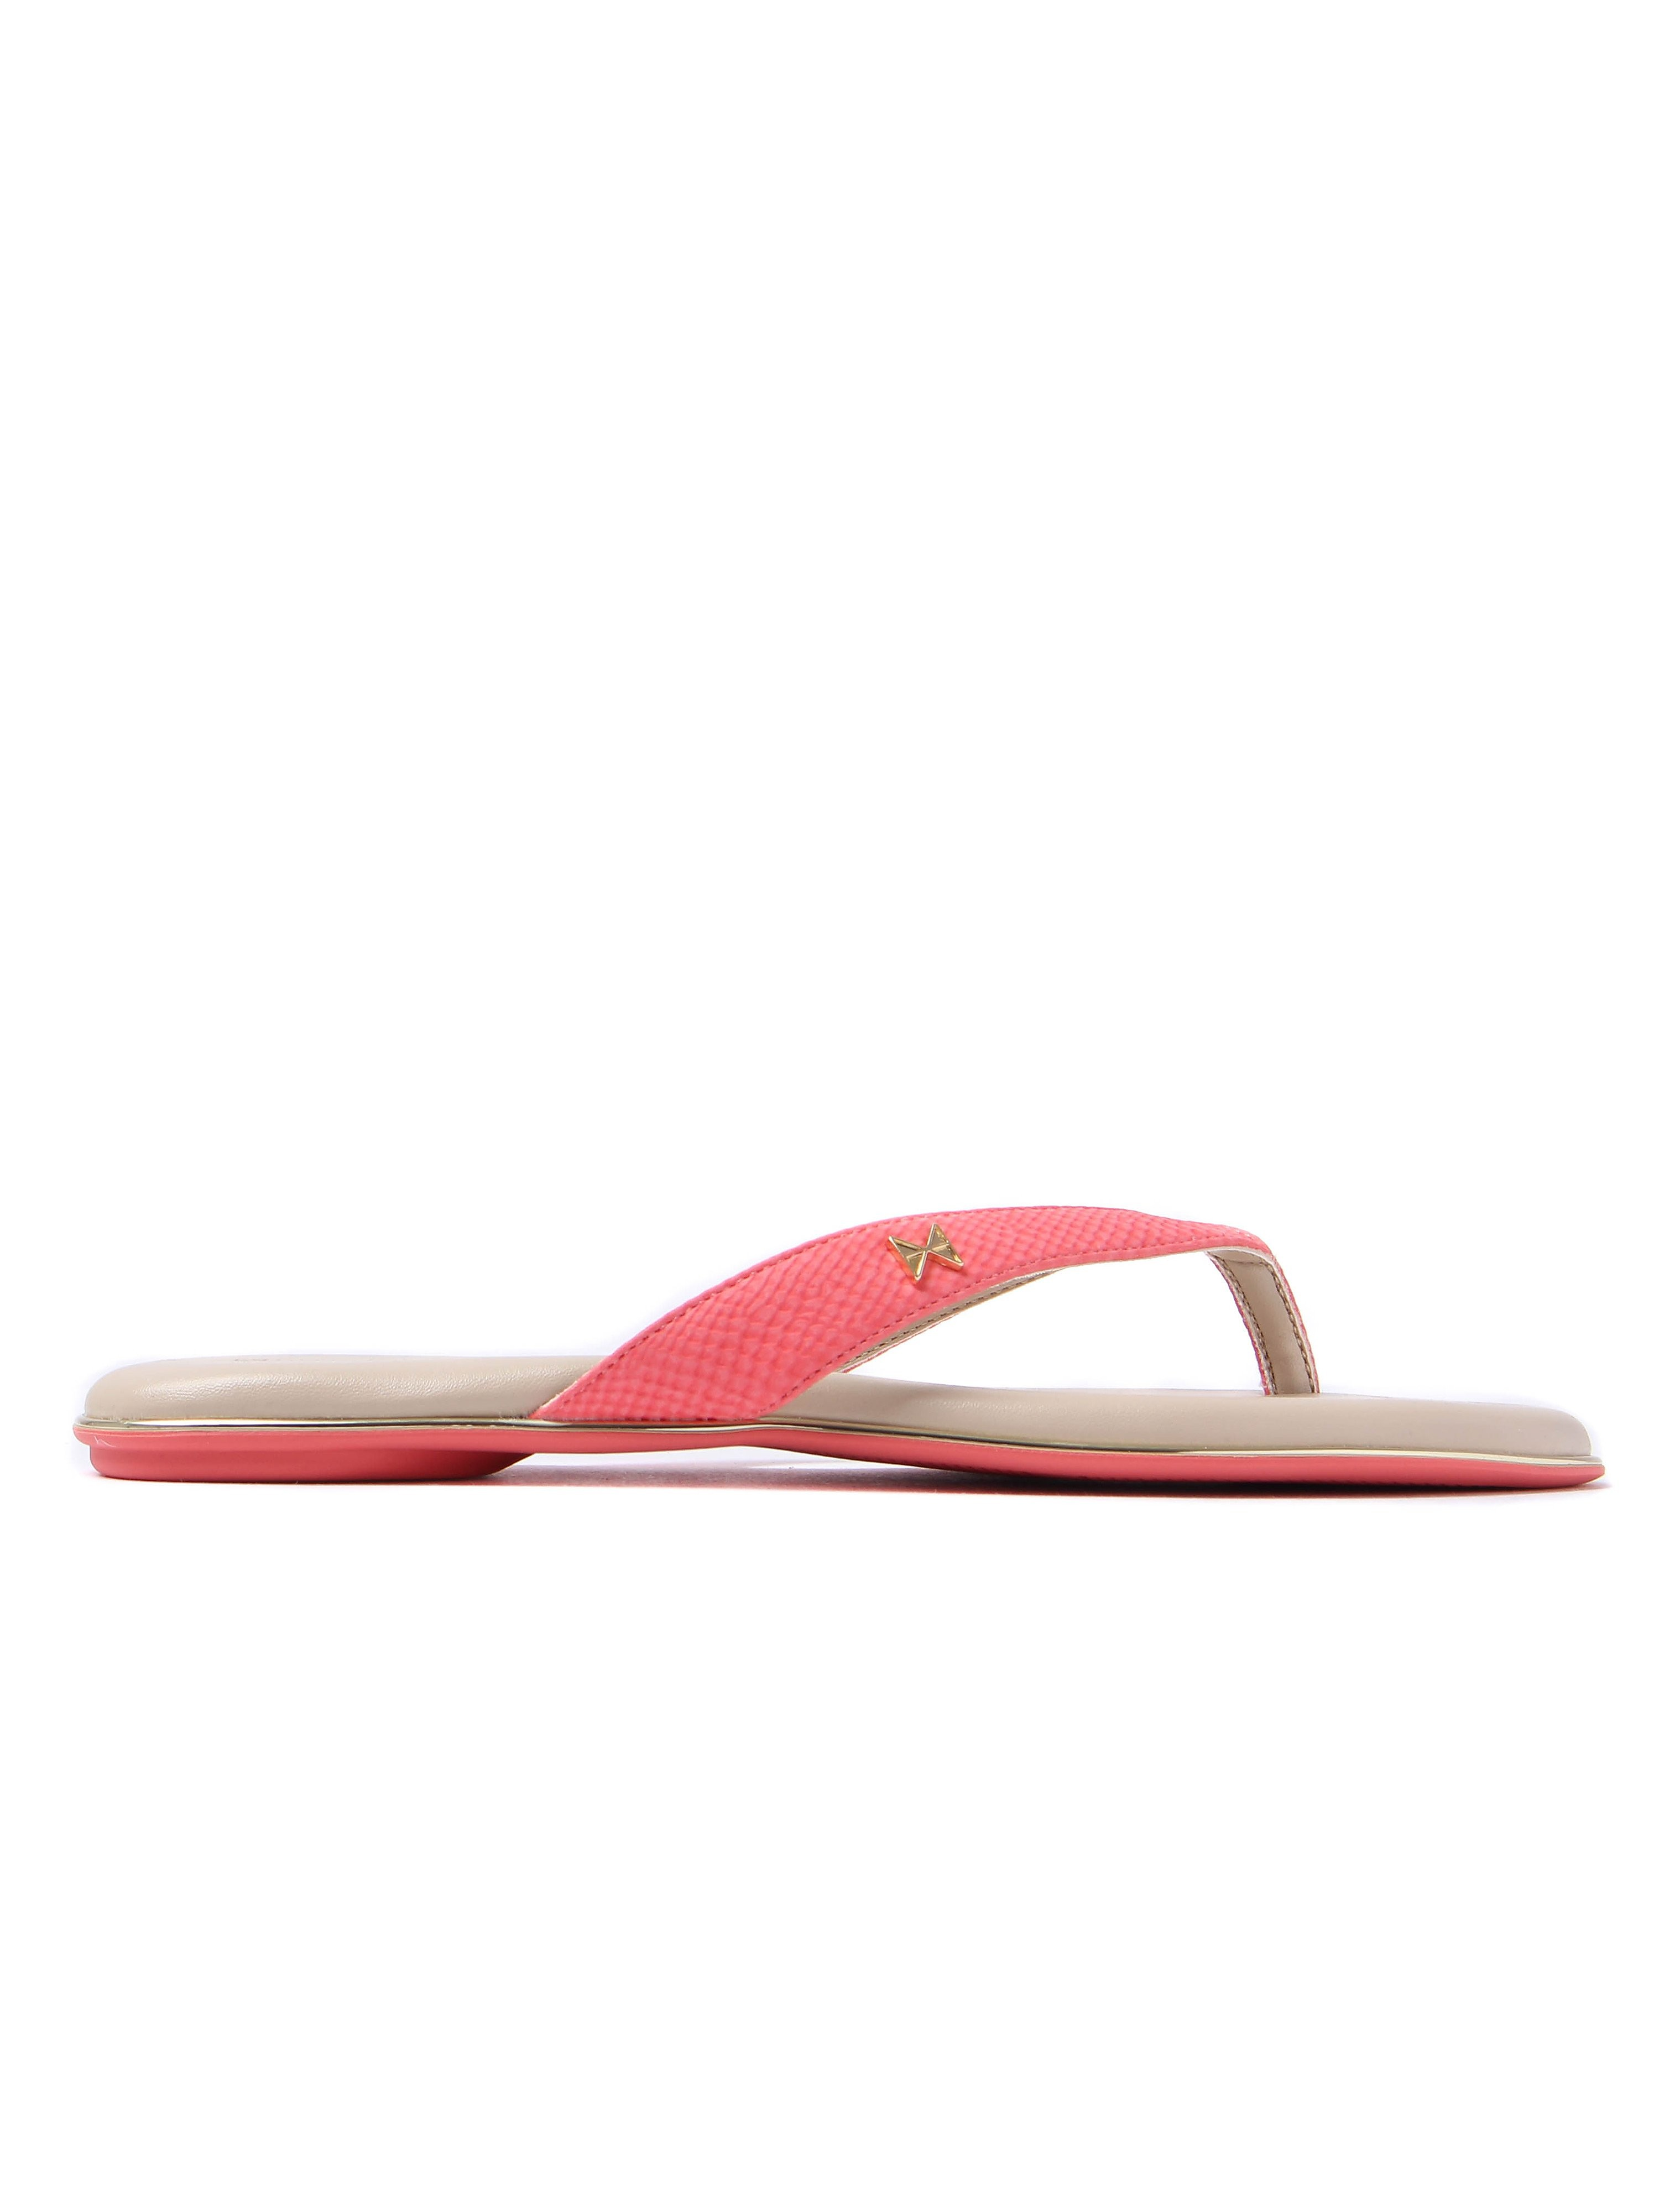 Butterfly Twists Women's Lola Snake Slim Flip Flops - Coral